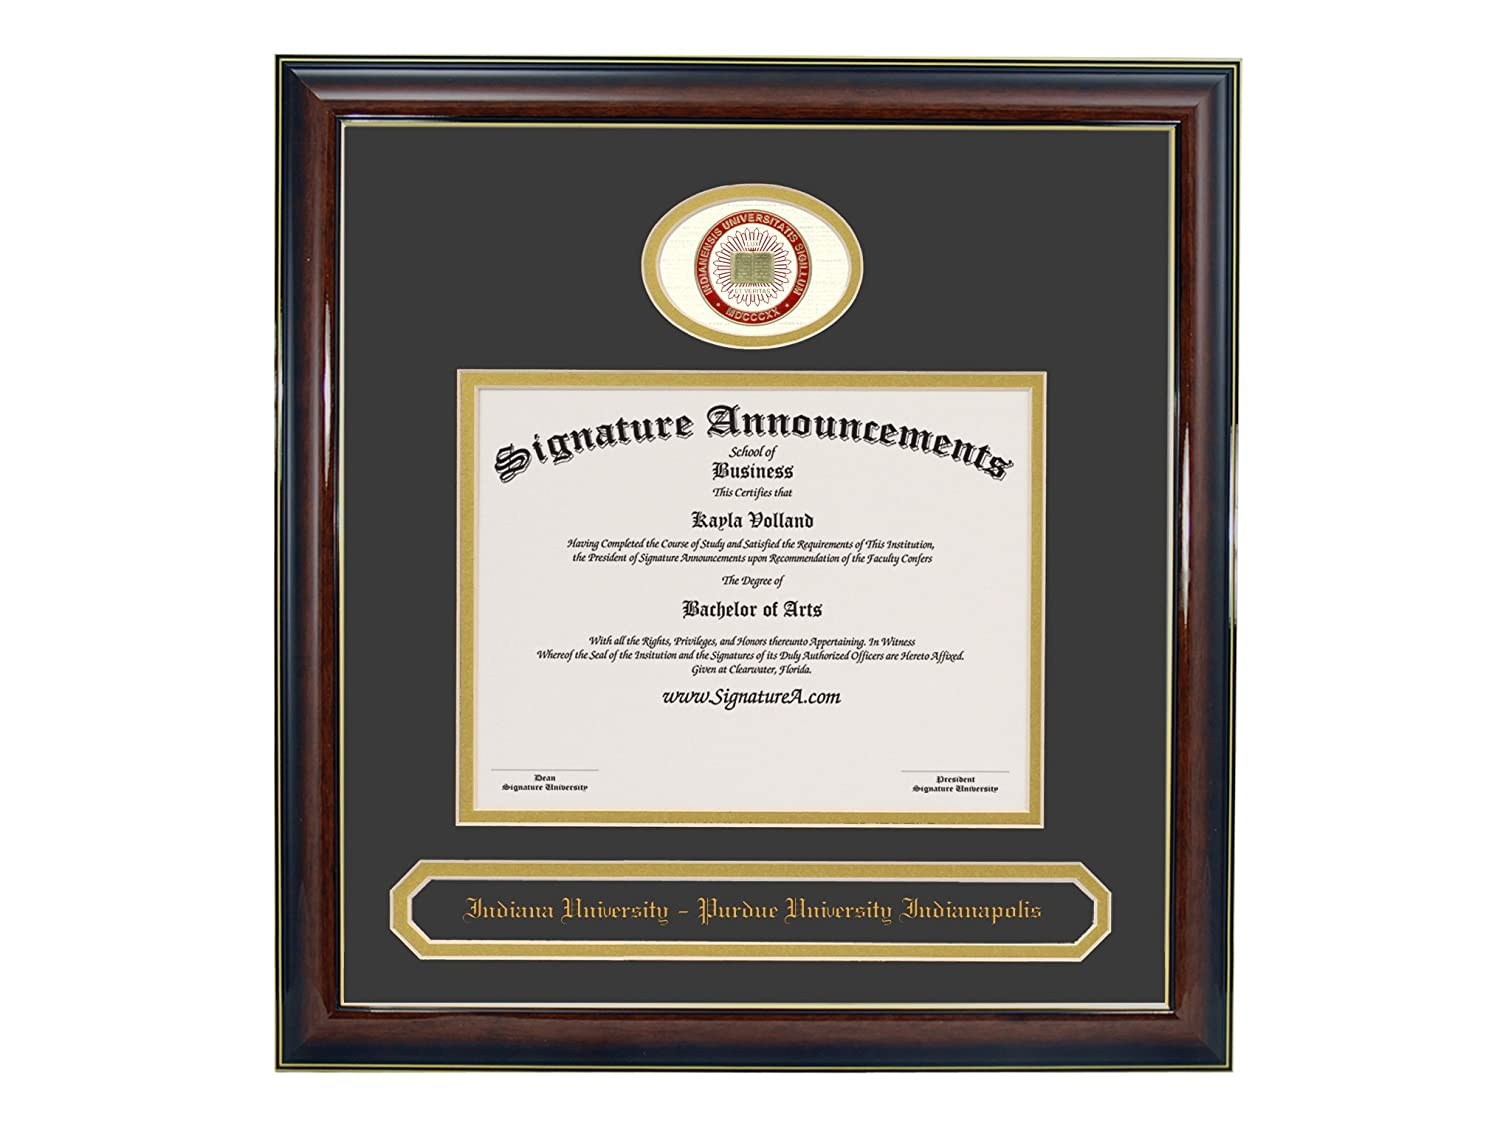 Gold Accent Gloss Mahogany 16 x 16 Signature Announcements Indiana Purdue-University-Indianapolis Doctorate Sculpted Foil Seal /& Name Graduation Diploma Frame